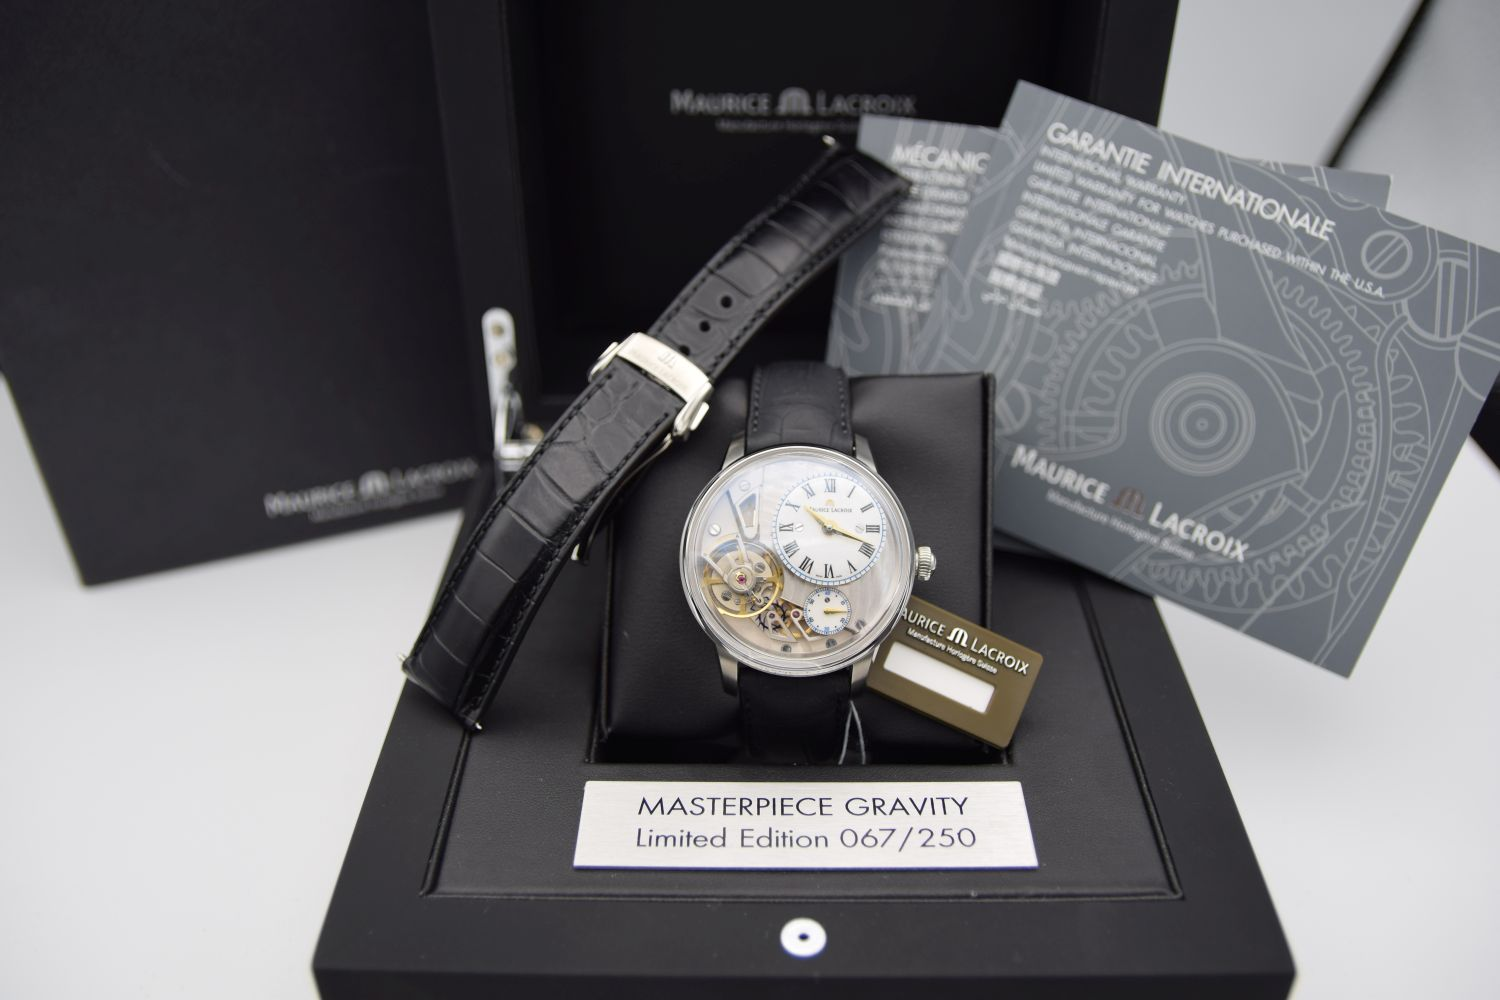 GENTLEMAN'S MAURICE LACROIX MATERPIECE GRAVITY LIMITED EDITION, AUTOMATIC MANUFACTURE ML230, - Image 5 of 8